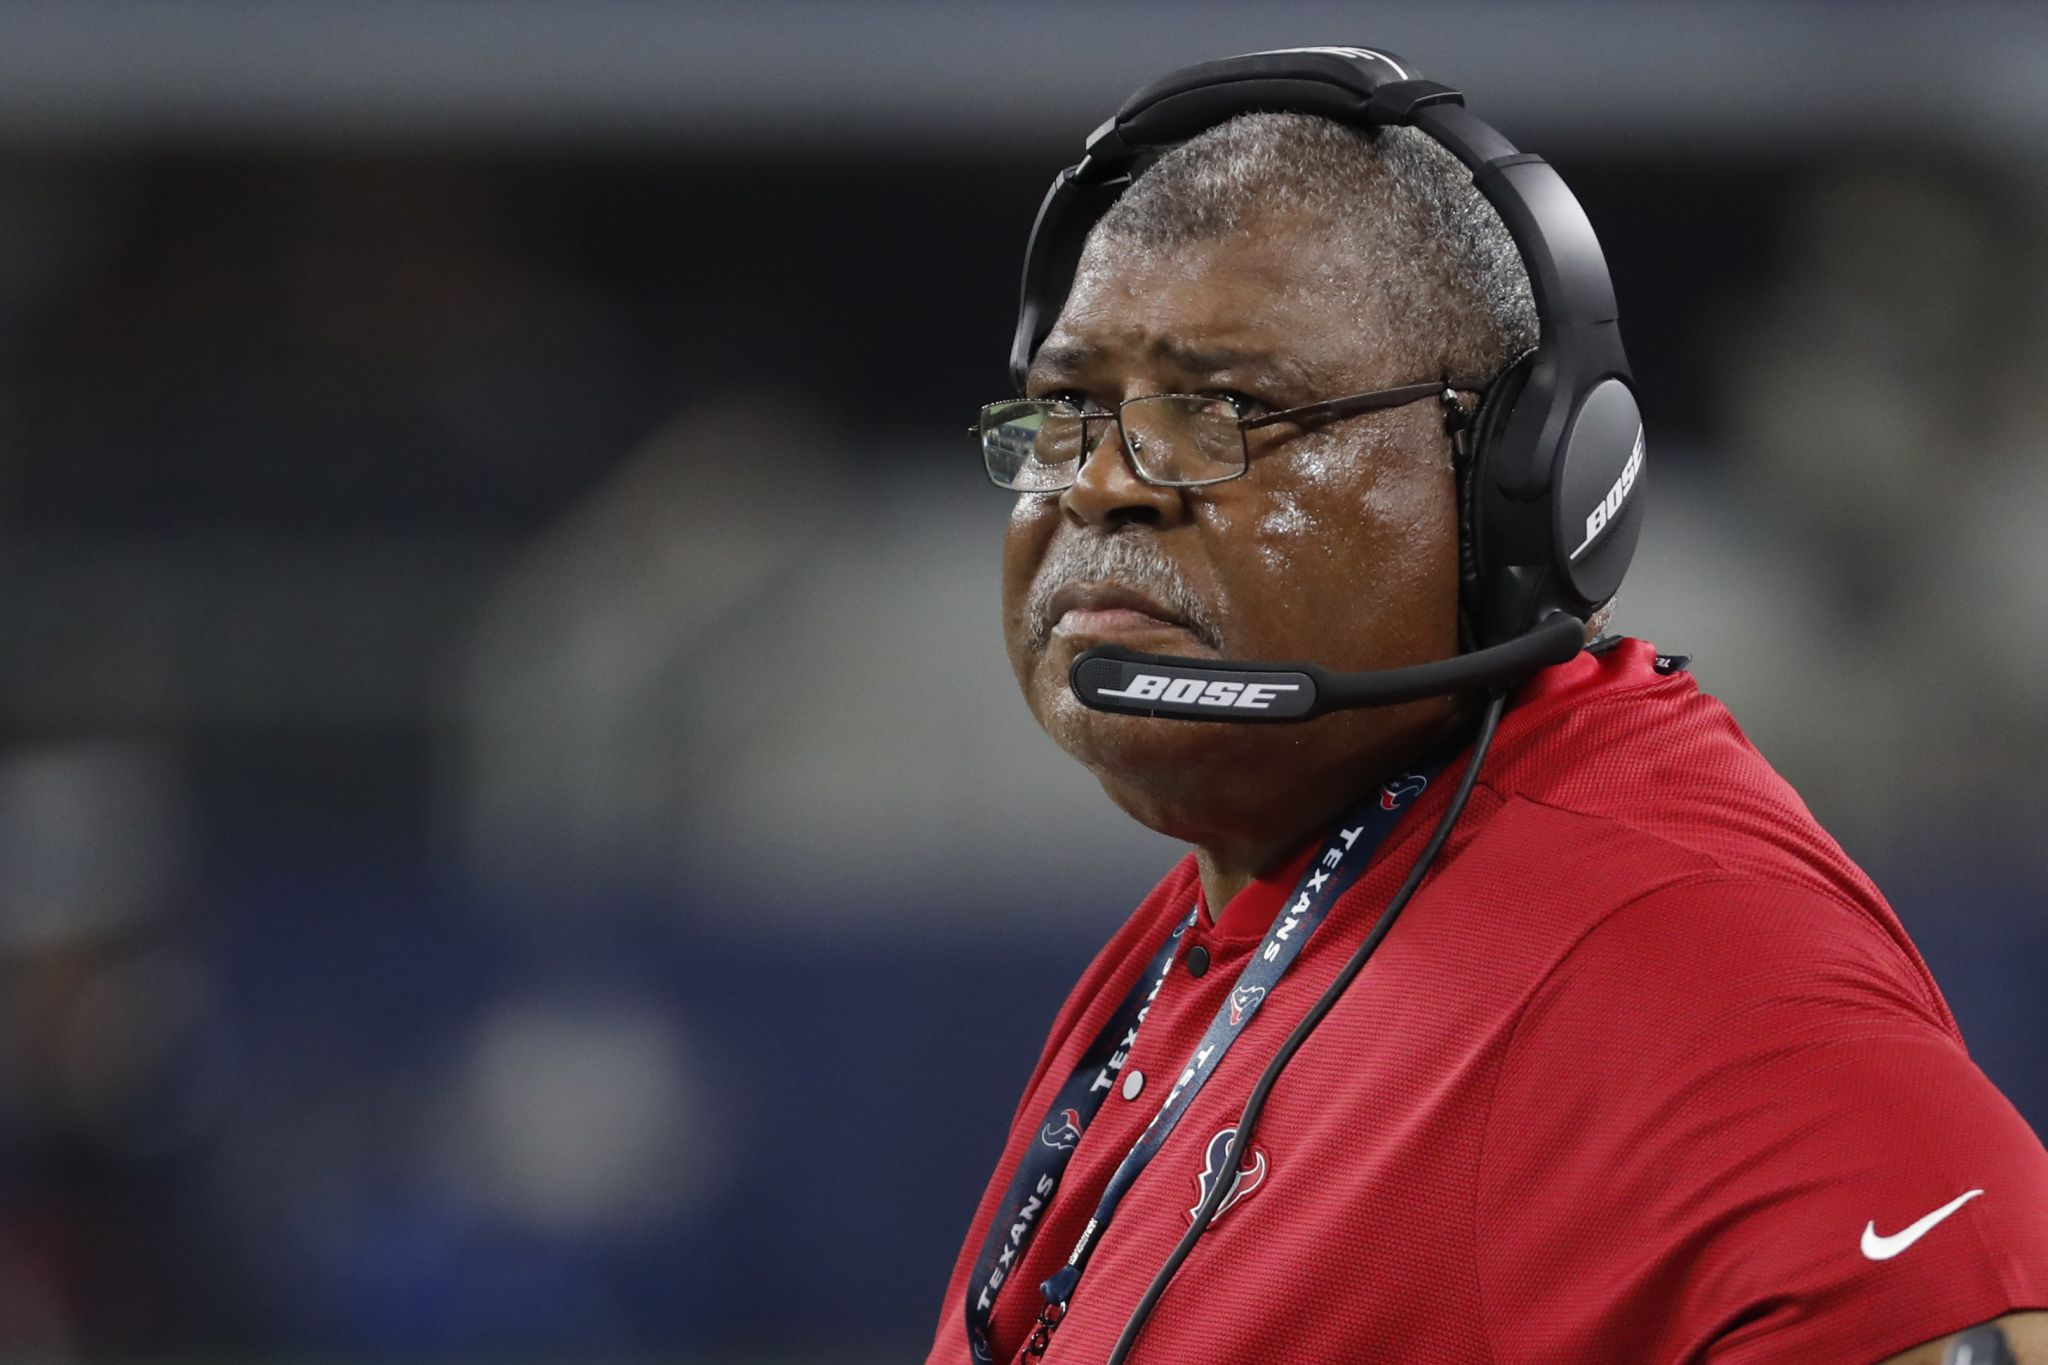 McClain: Defense, Crennel take the heat for Texans' late lapse